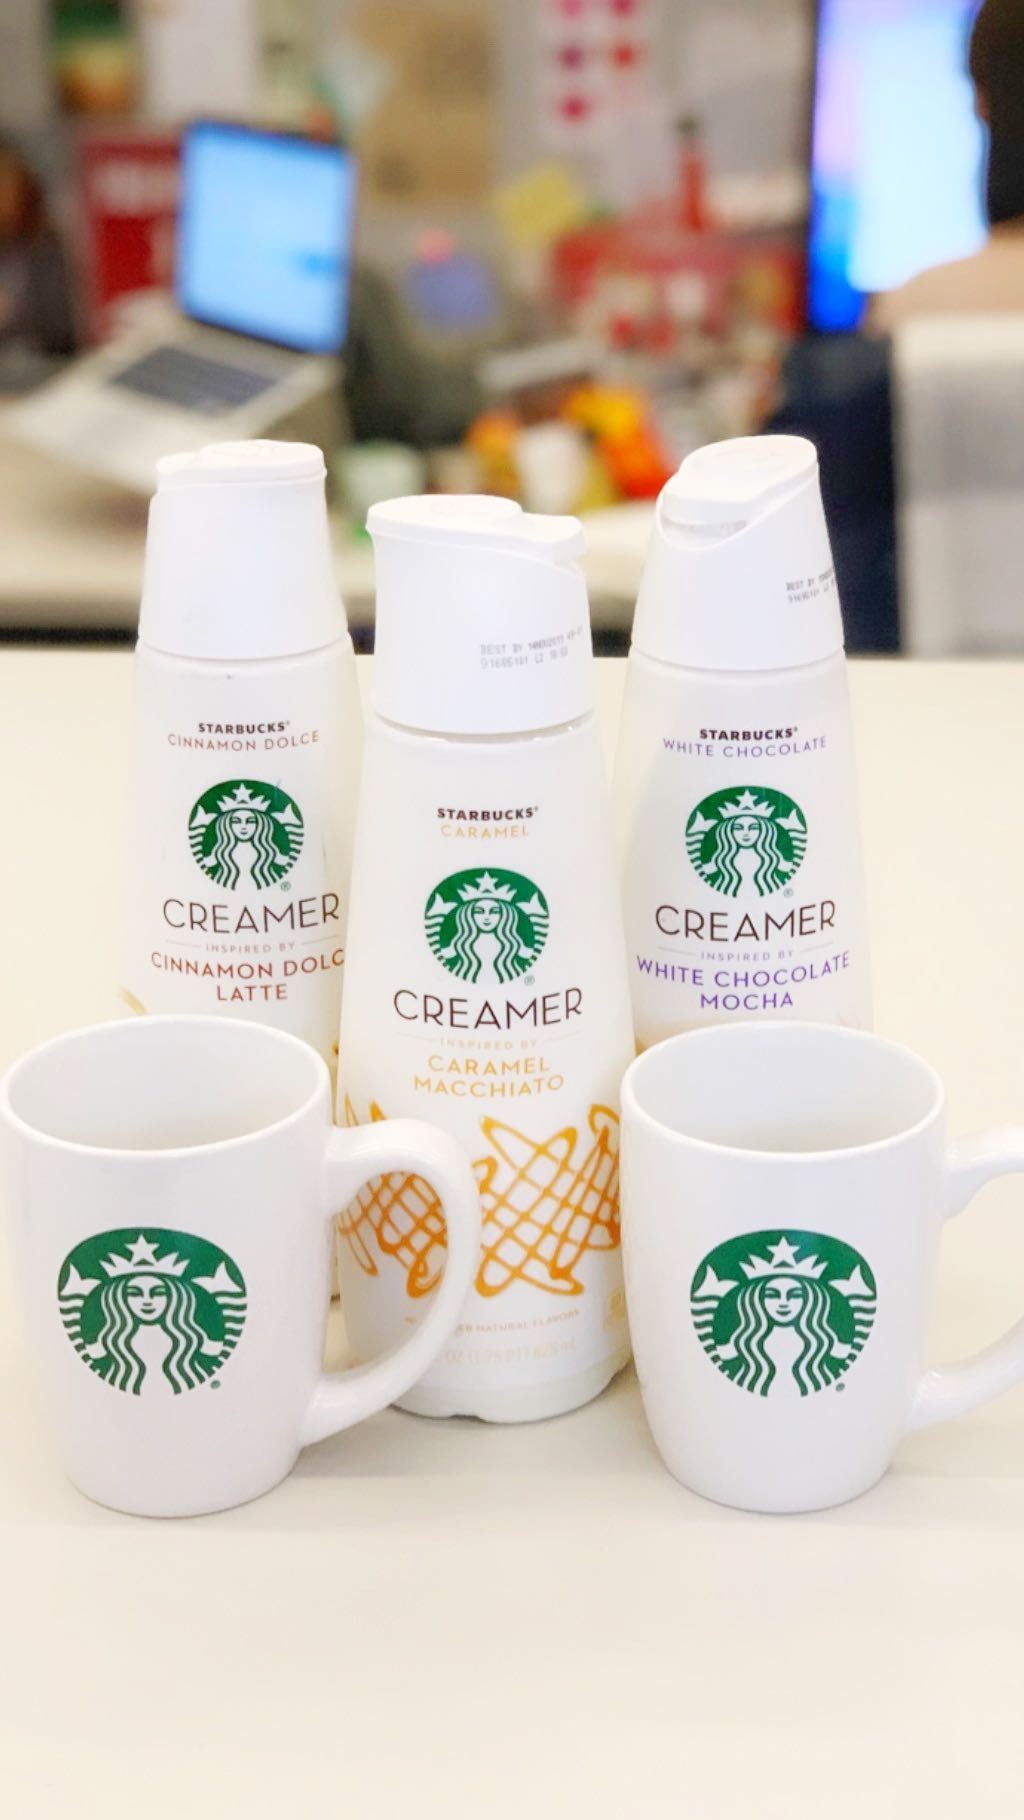 We Tried Starbucks' New Coffee Creamers And They Taste As Good As The Chain's In-Store Drinks